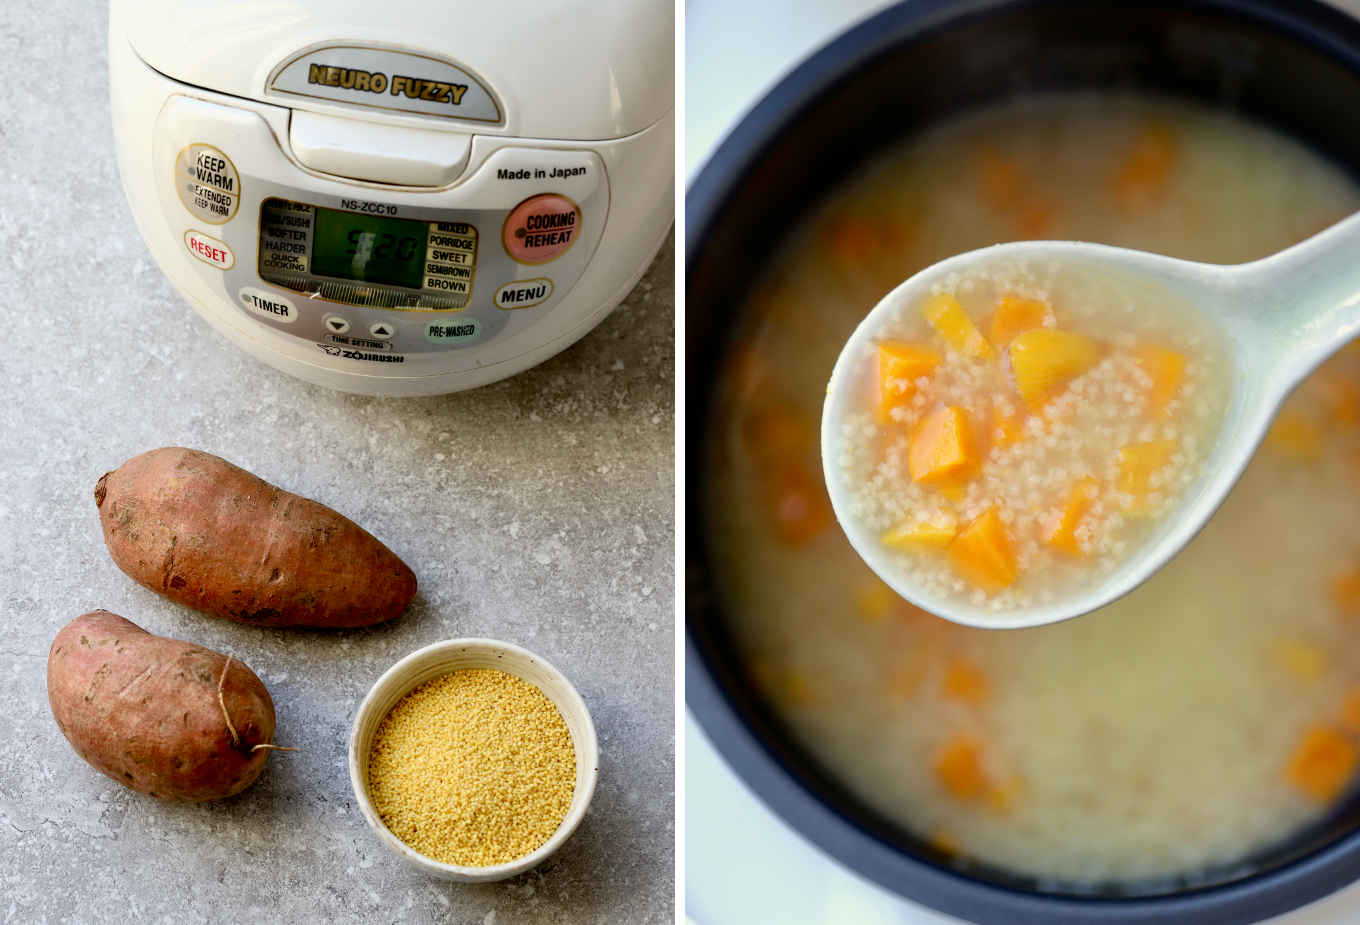 millet porridge can be prepared ahead of time in the rice cooker.